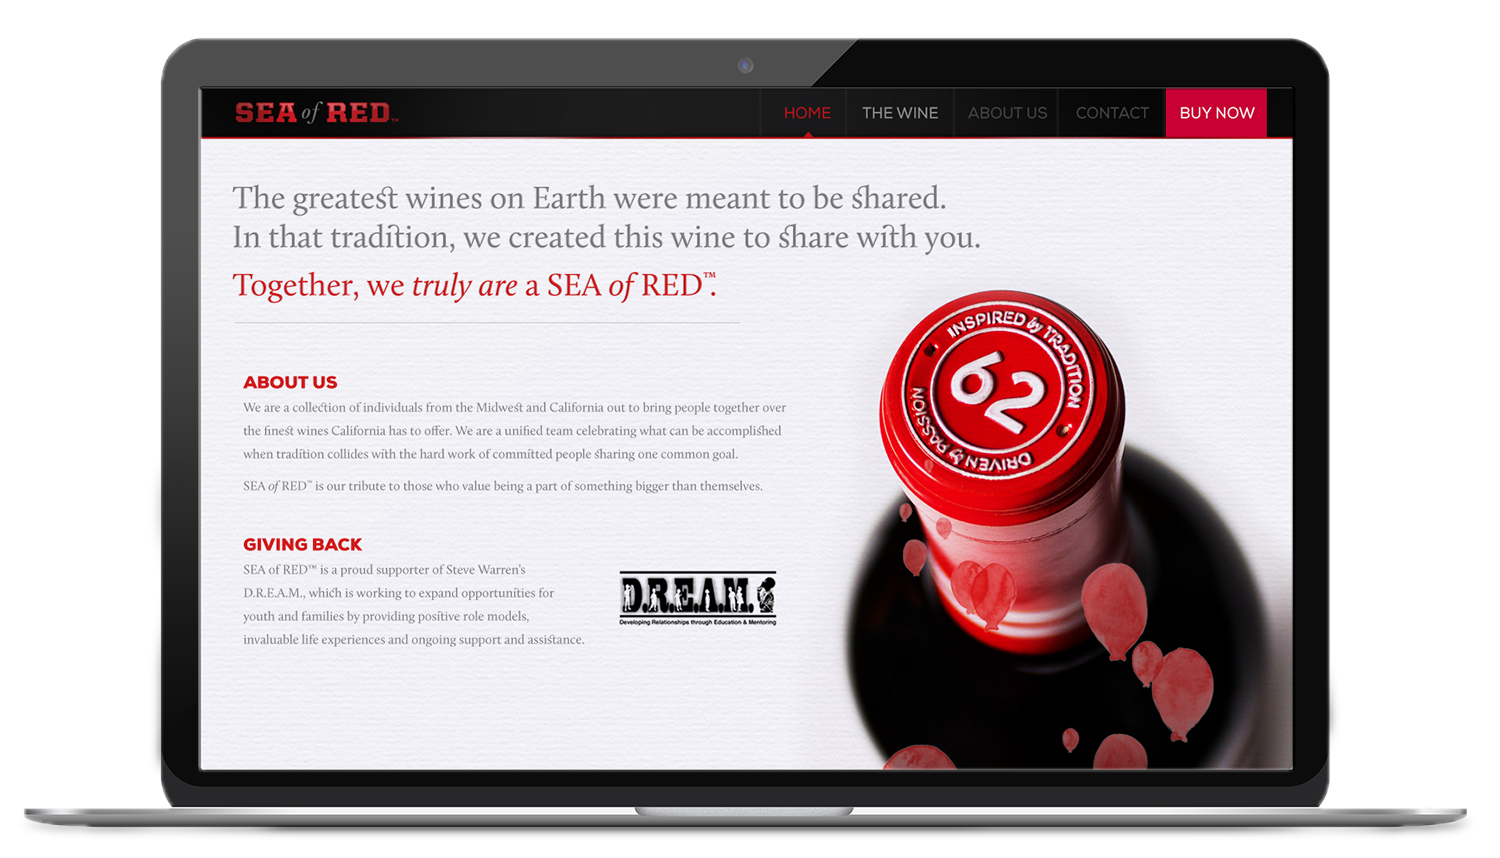 SEA of RED website design